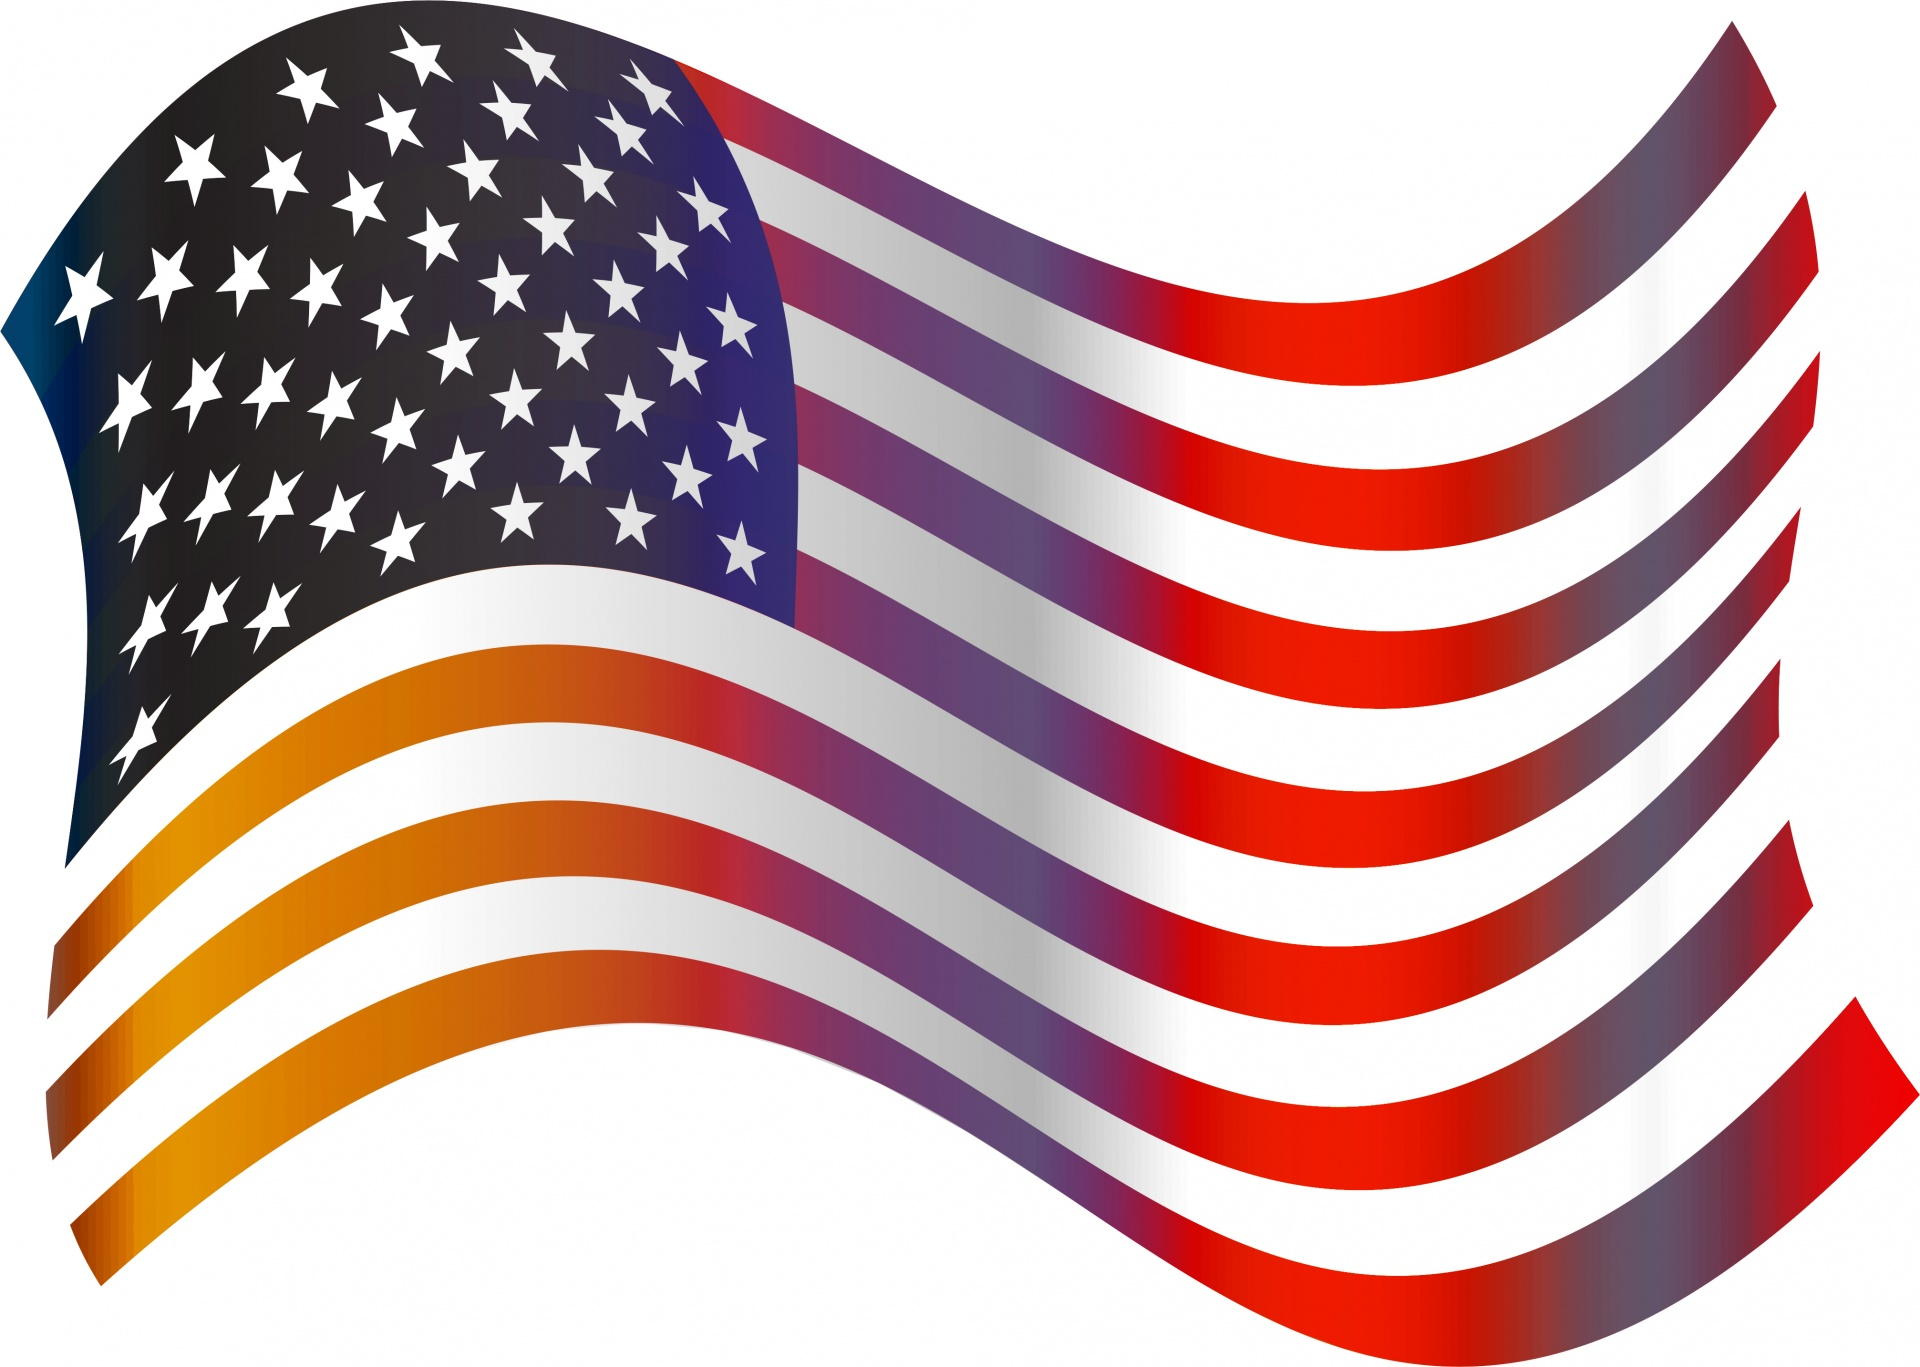 American flag clip art free pictures